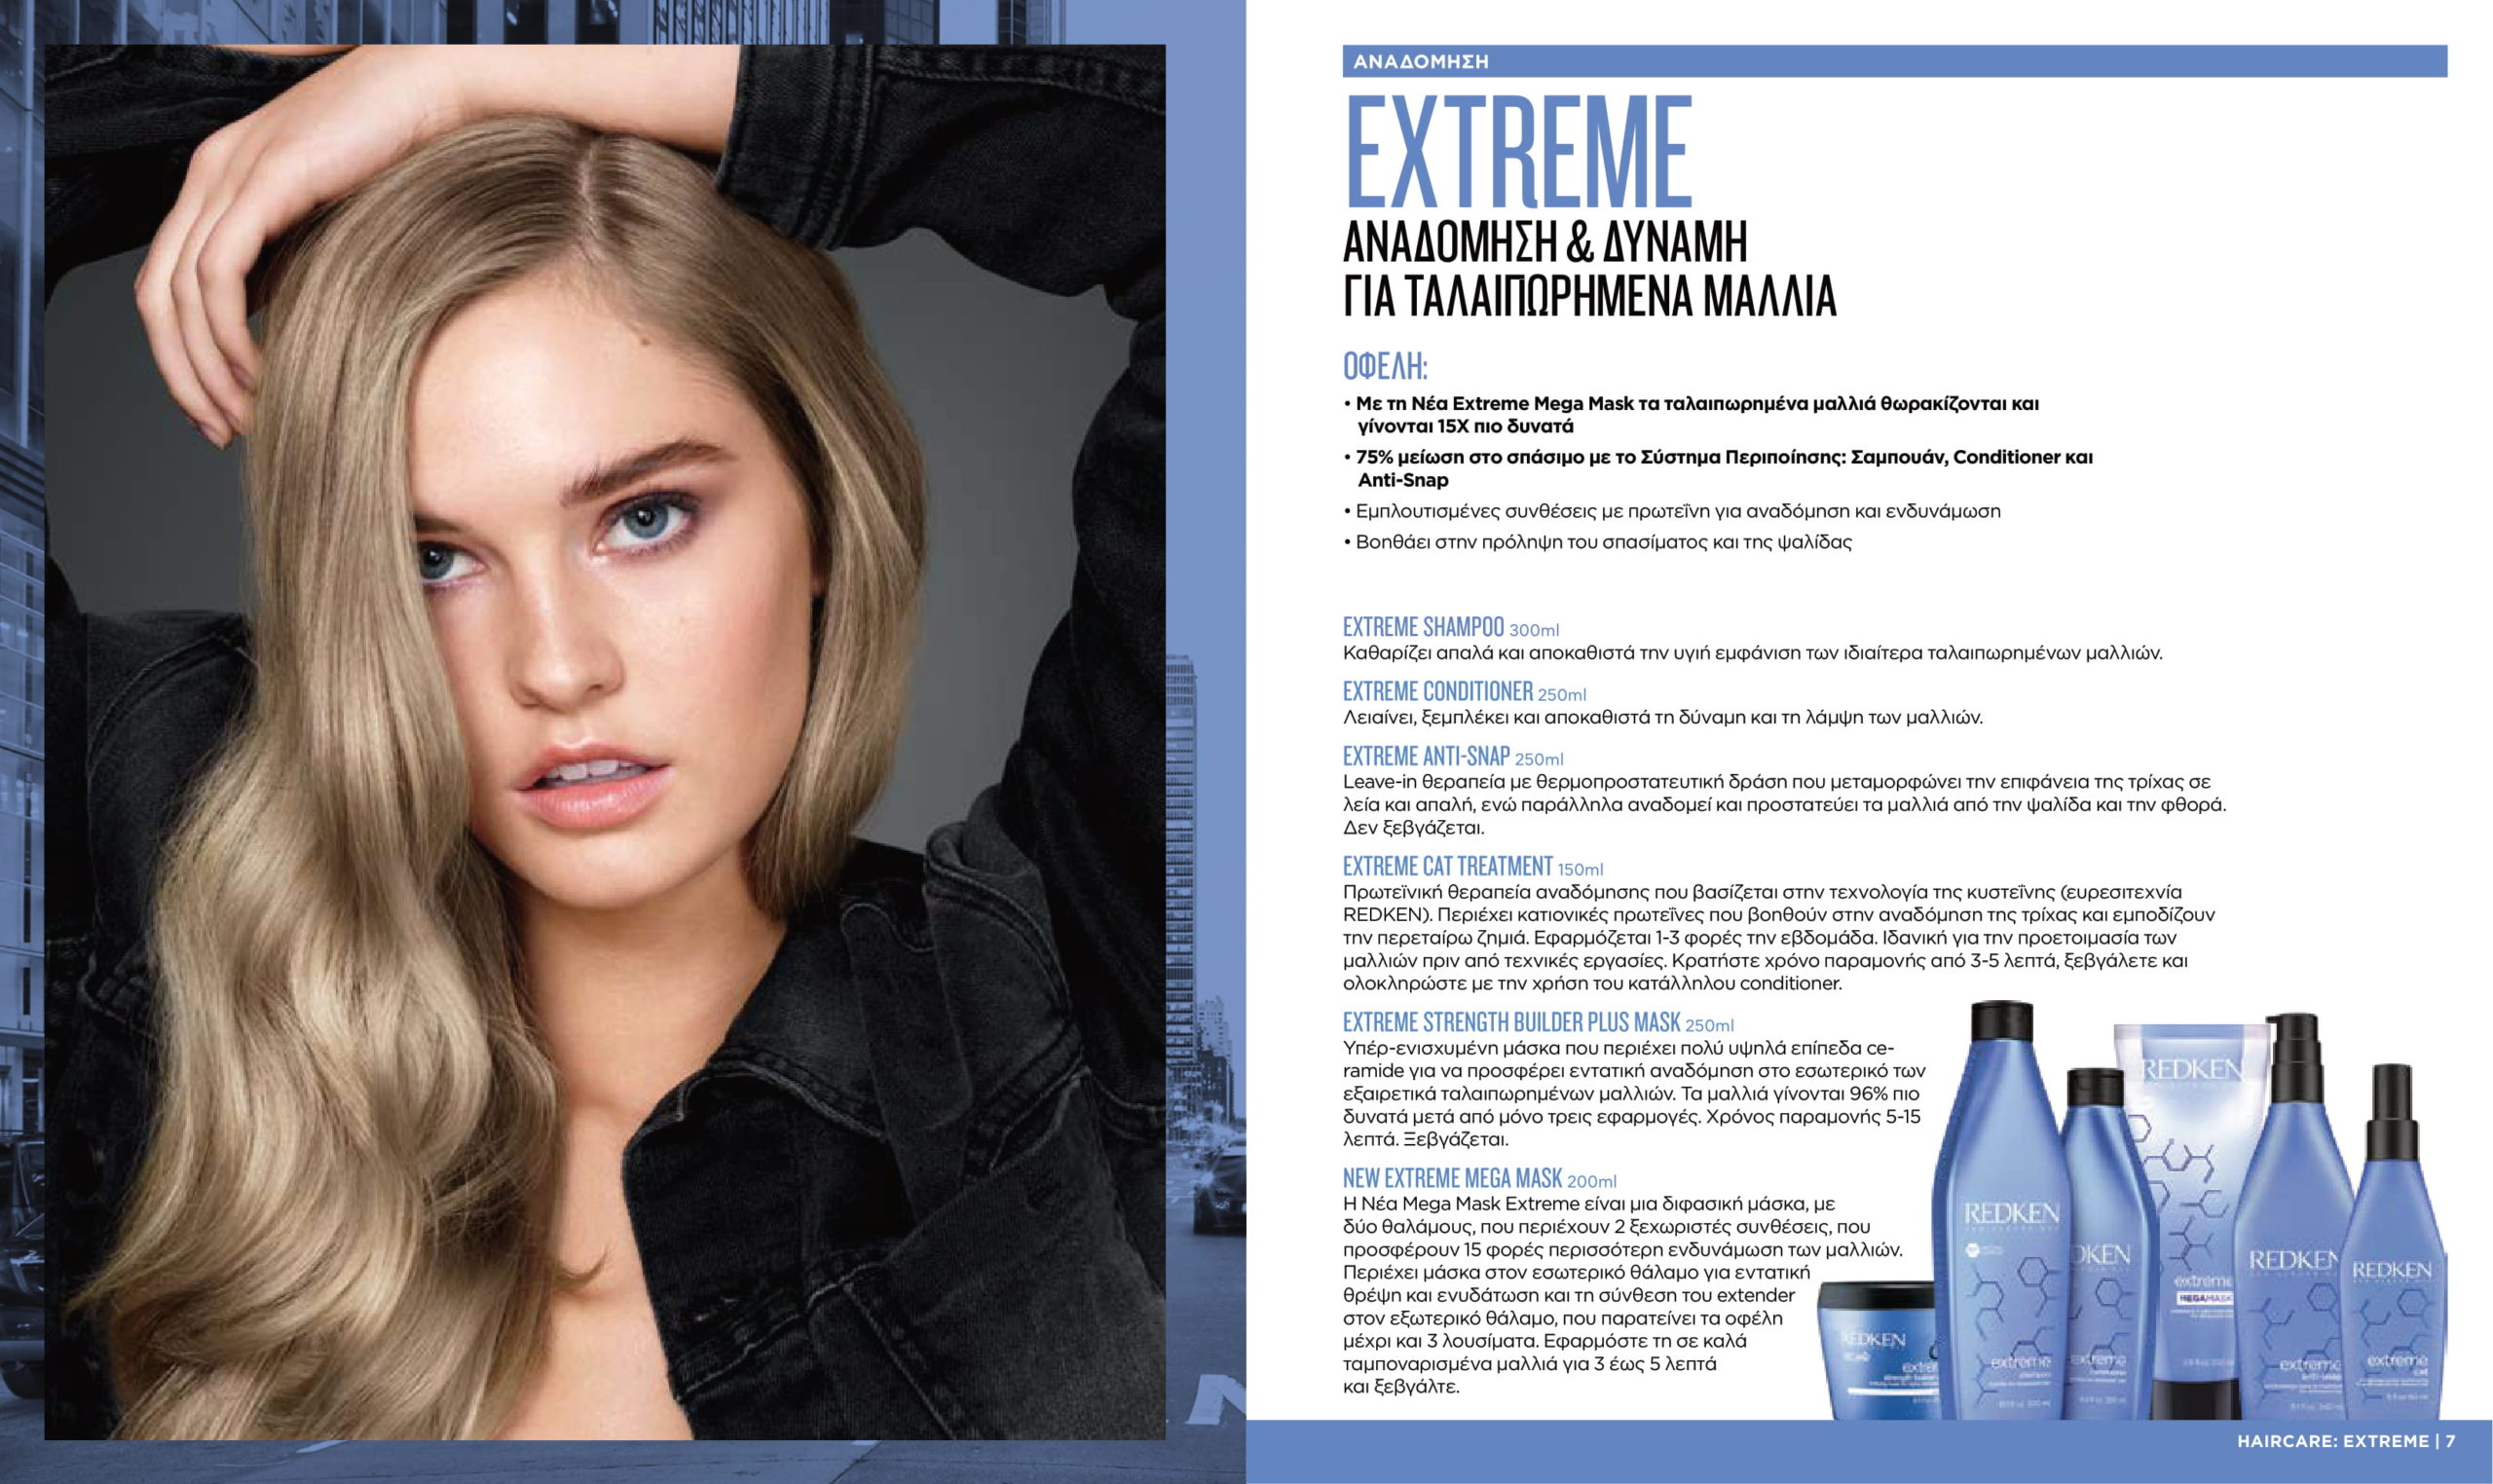 Hair-Products-Extreme-Shampoo